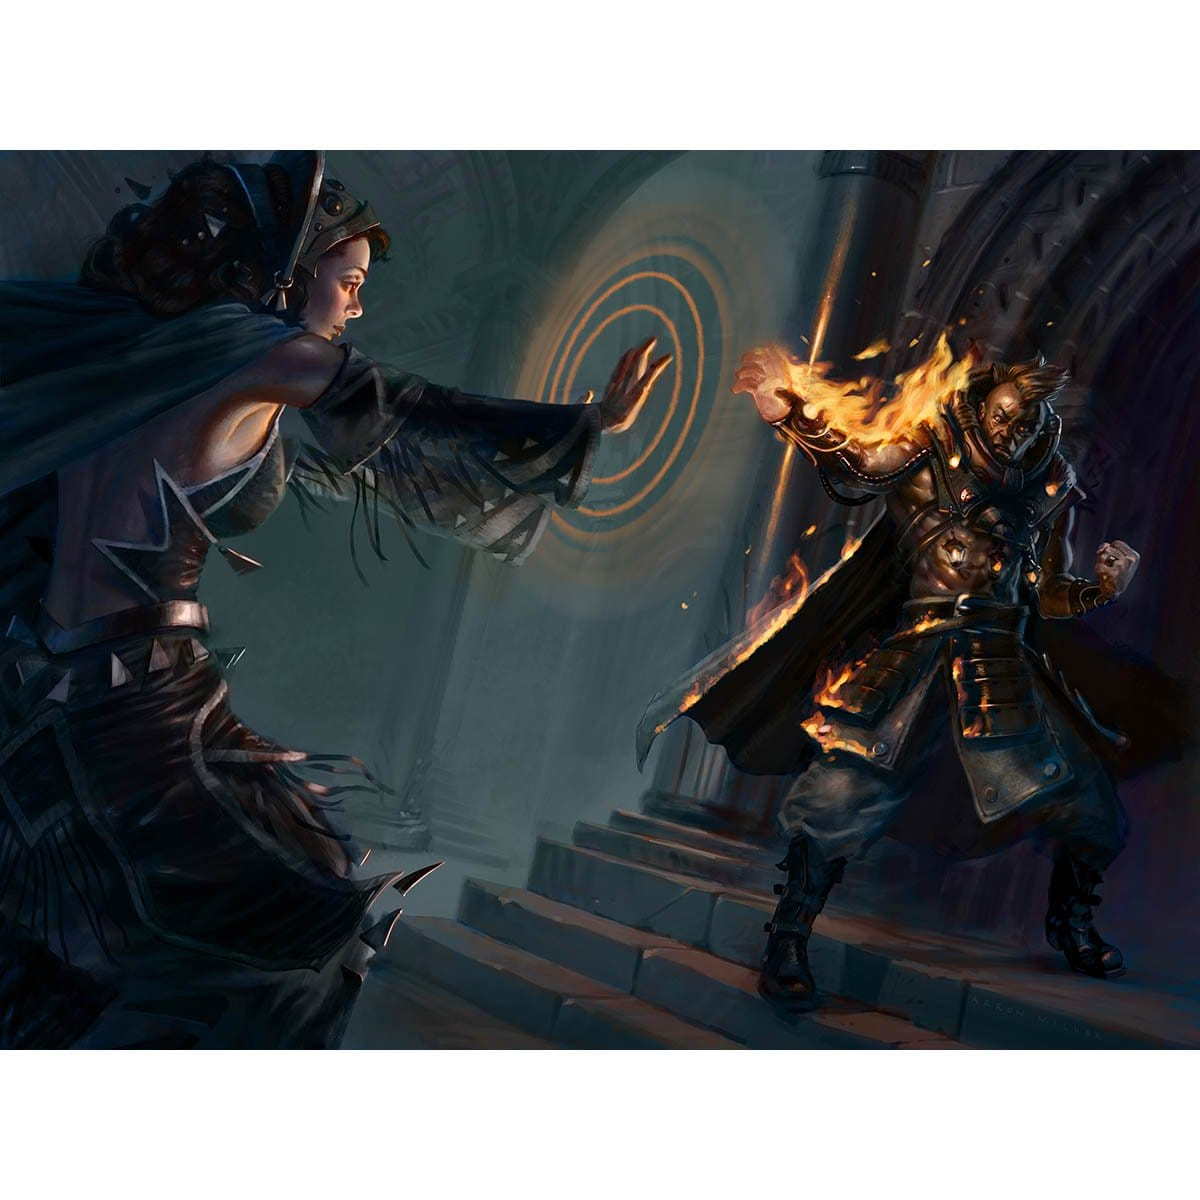 Aethersnatch Print - Print - Original Magic Art - Accessories for Magic the Gathering and other card games